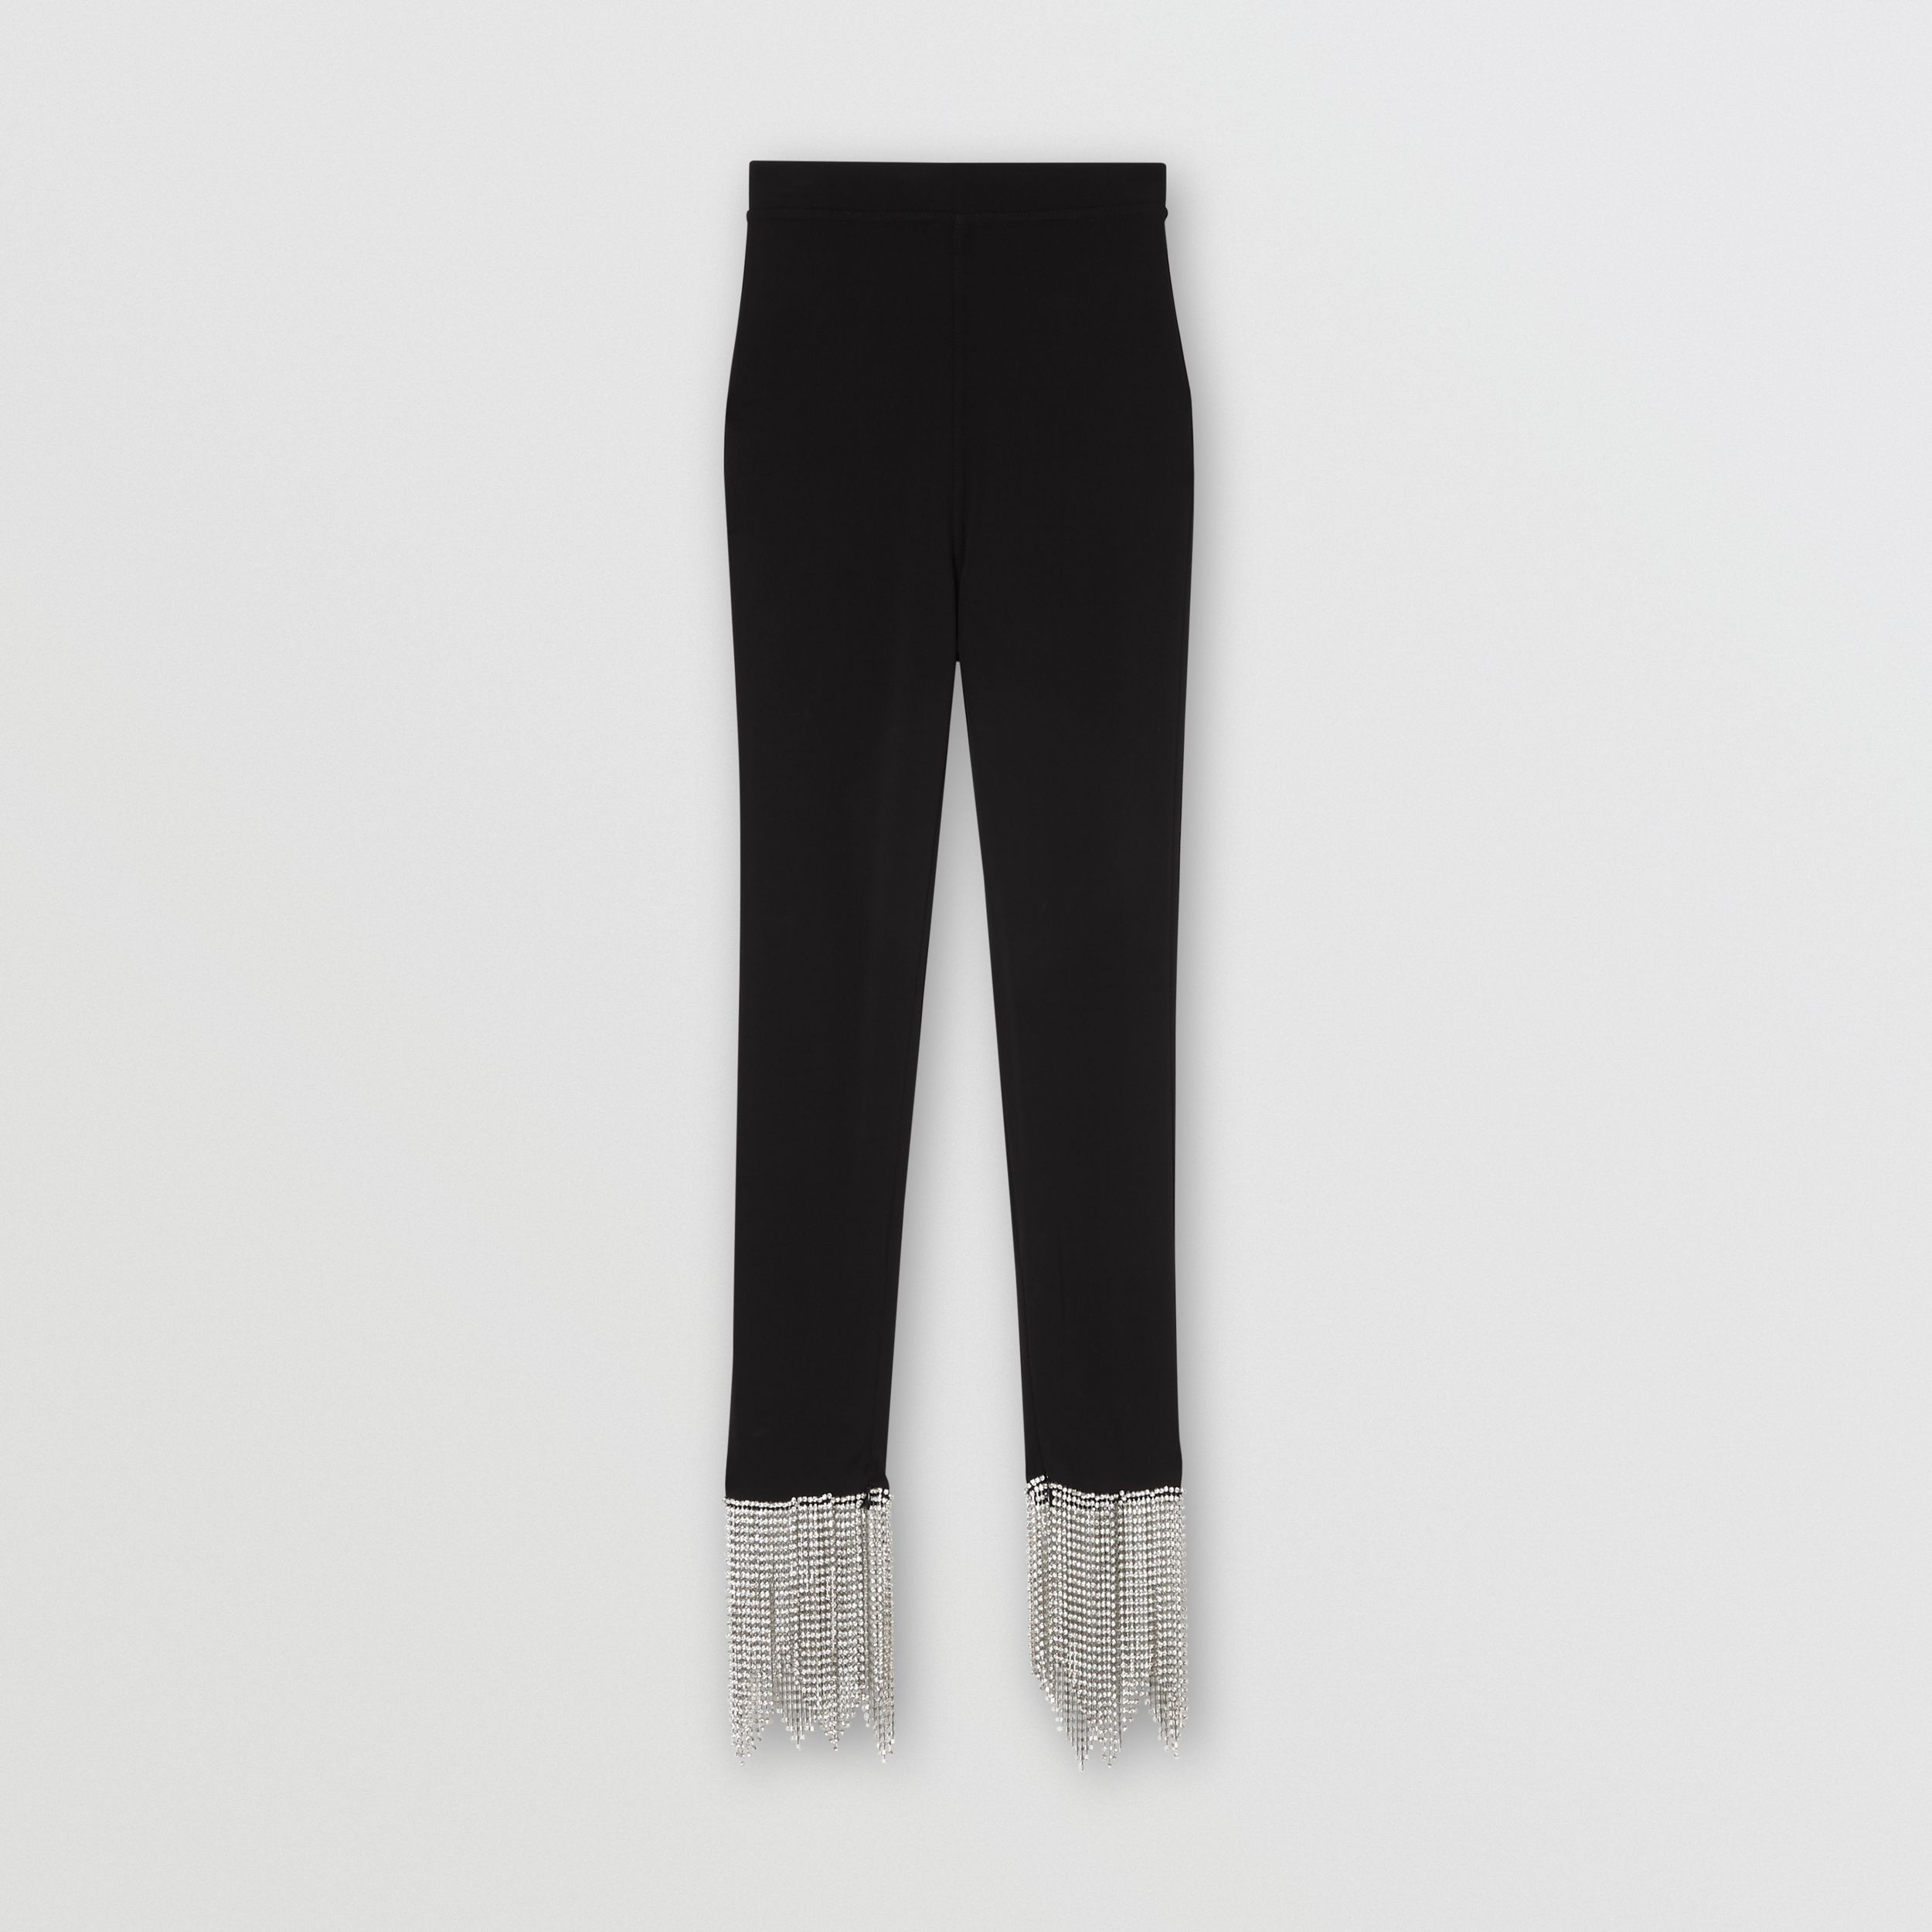 Crystal Fringe Detail Stretch Jersey Leggings in Black - Women | Burberry - 4